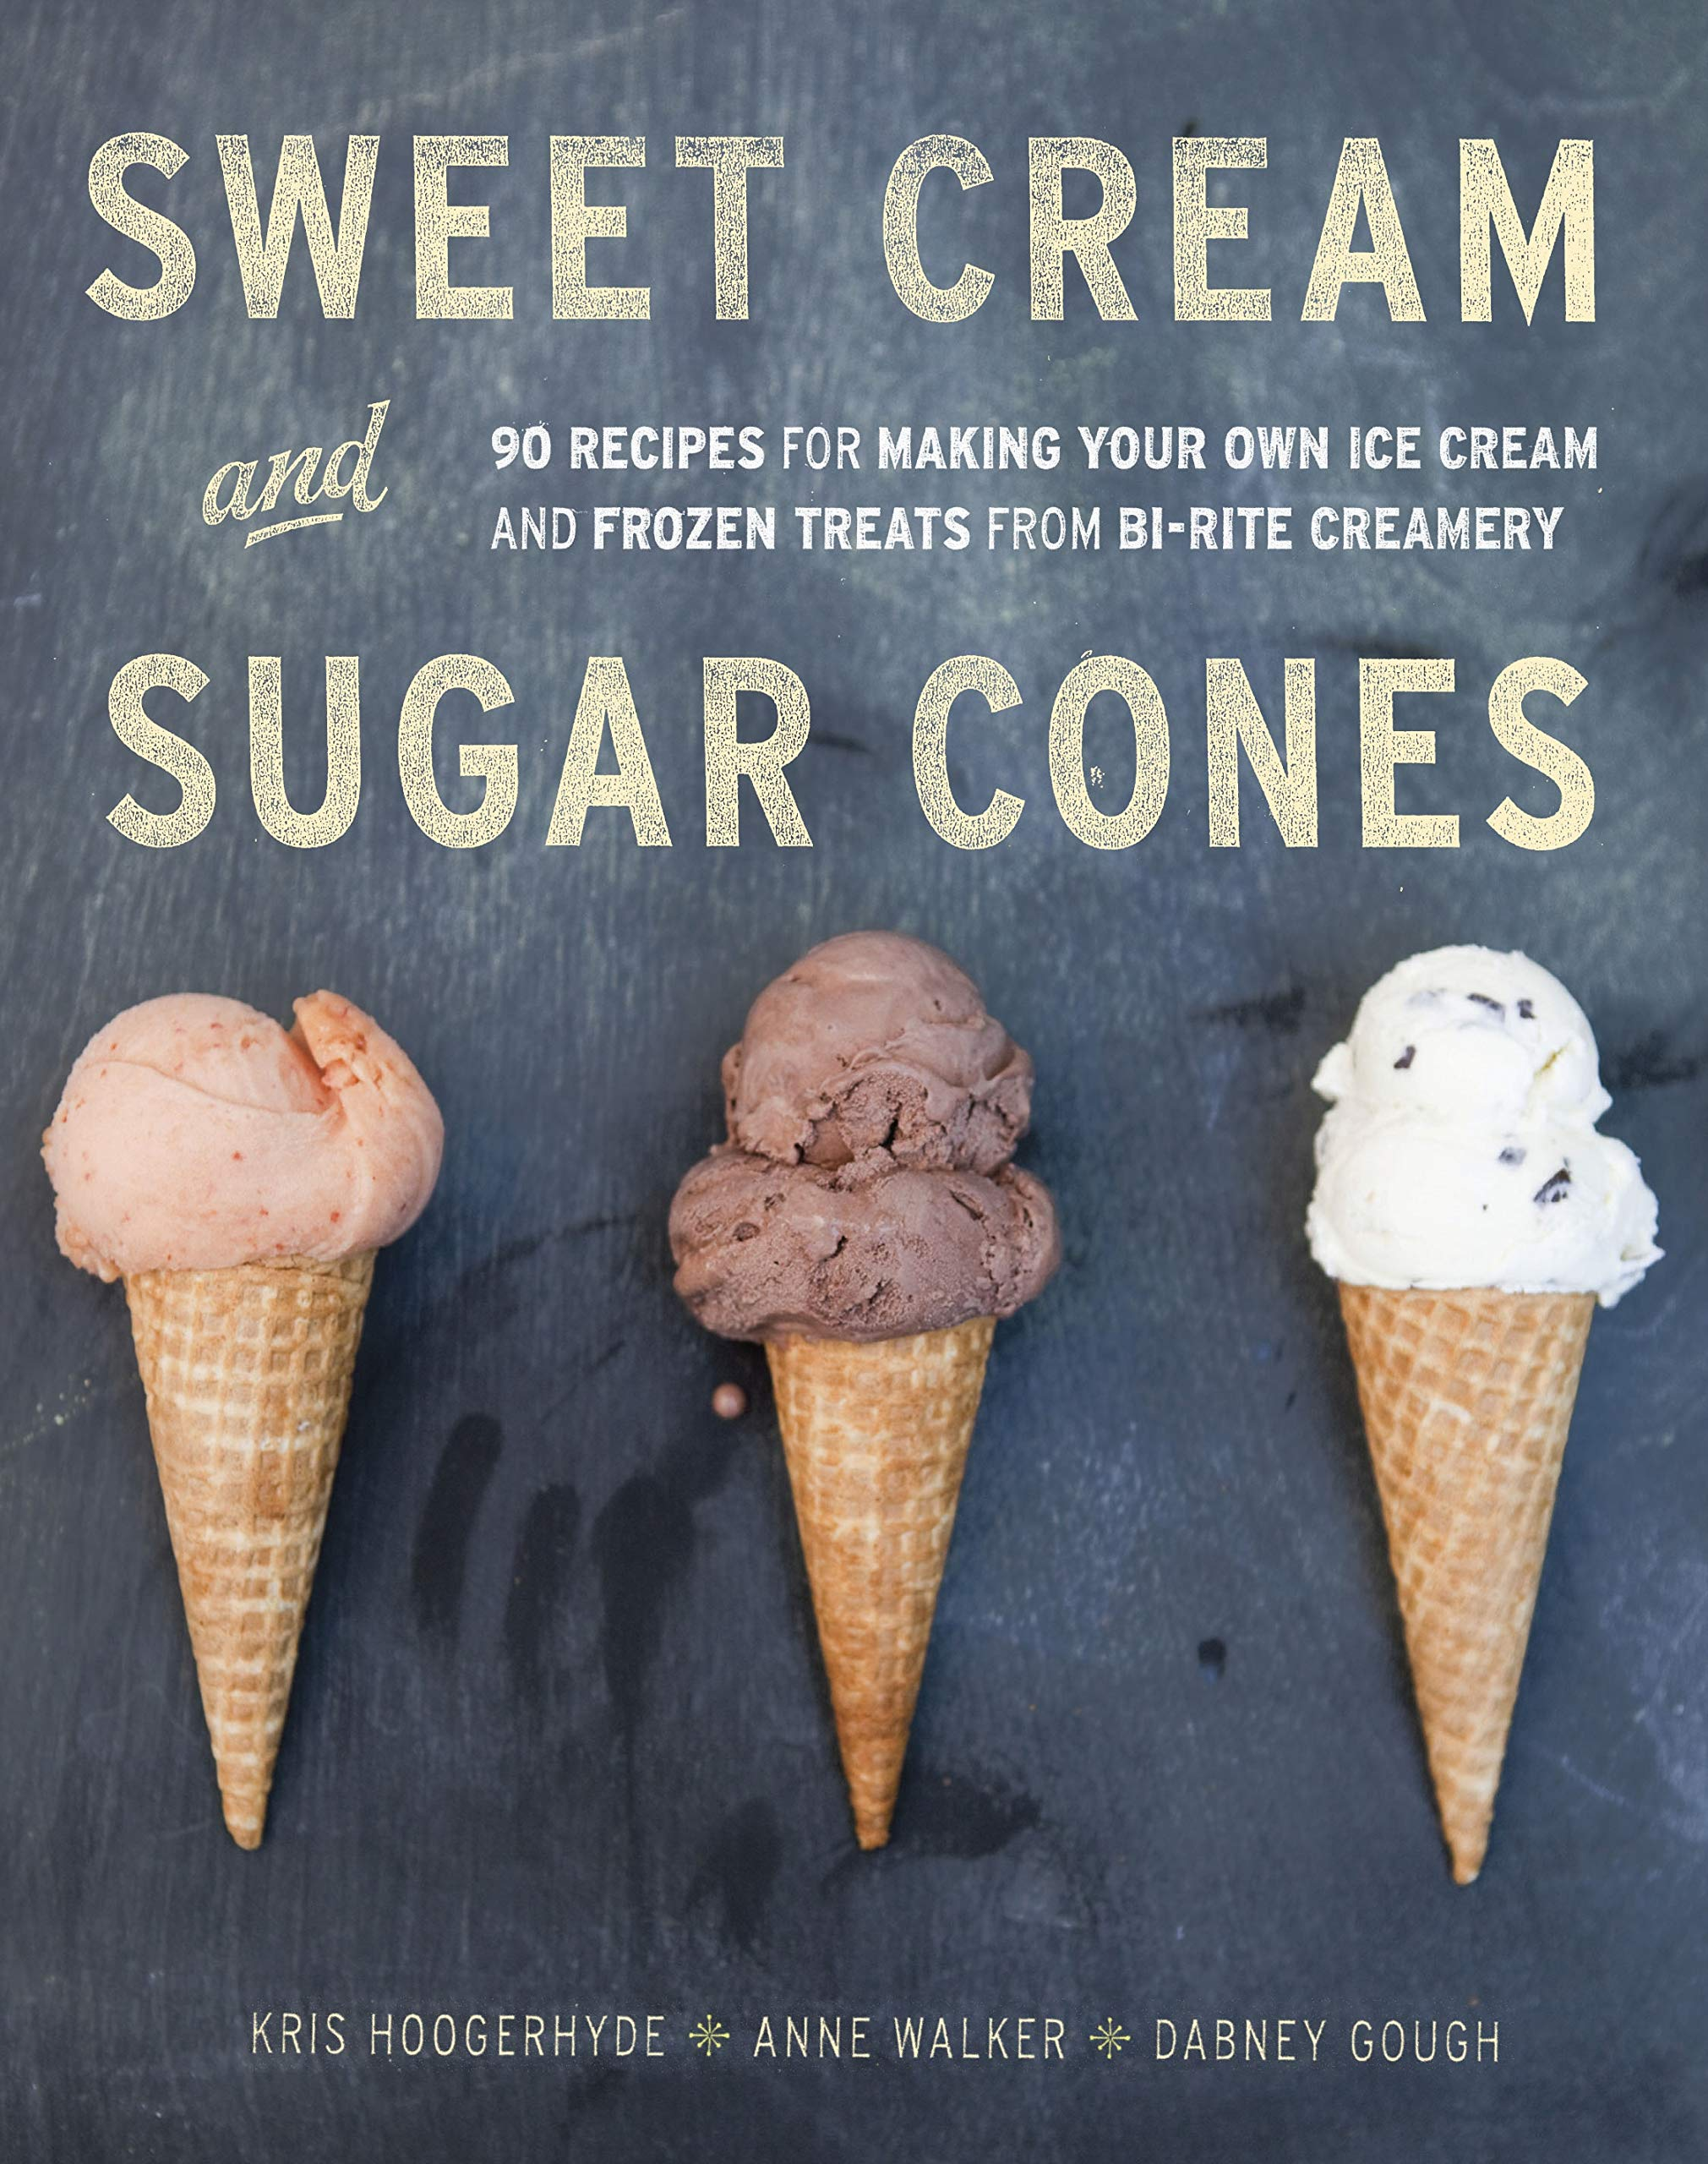 Sweet Cream And Sugar Cones: 90 Recipes For Making Your Own Ice Cream And Frozen Treats From Bi-Rite Creamery A Cookbook